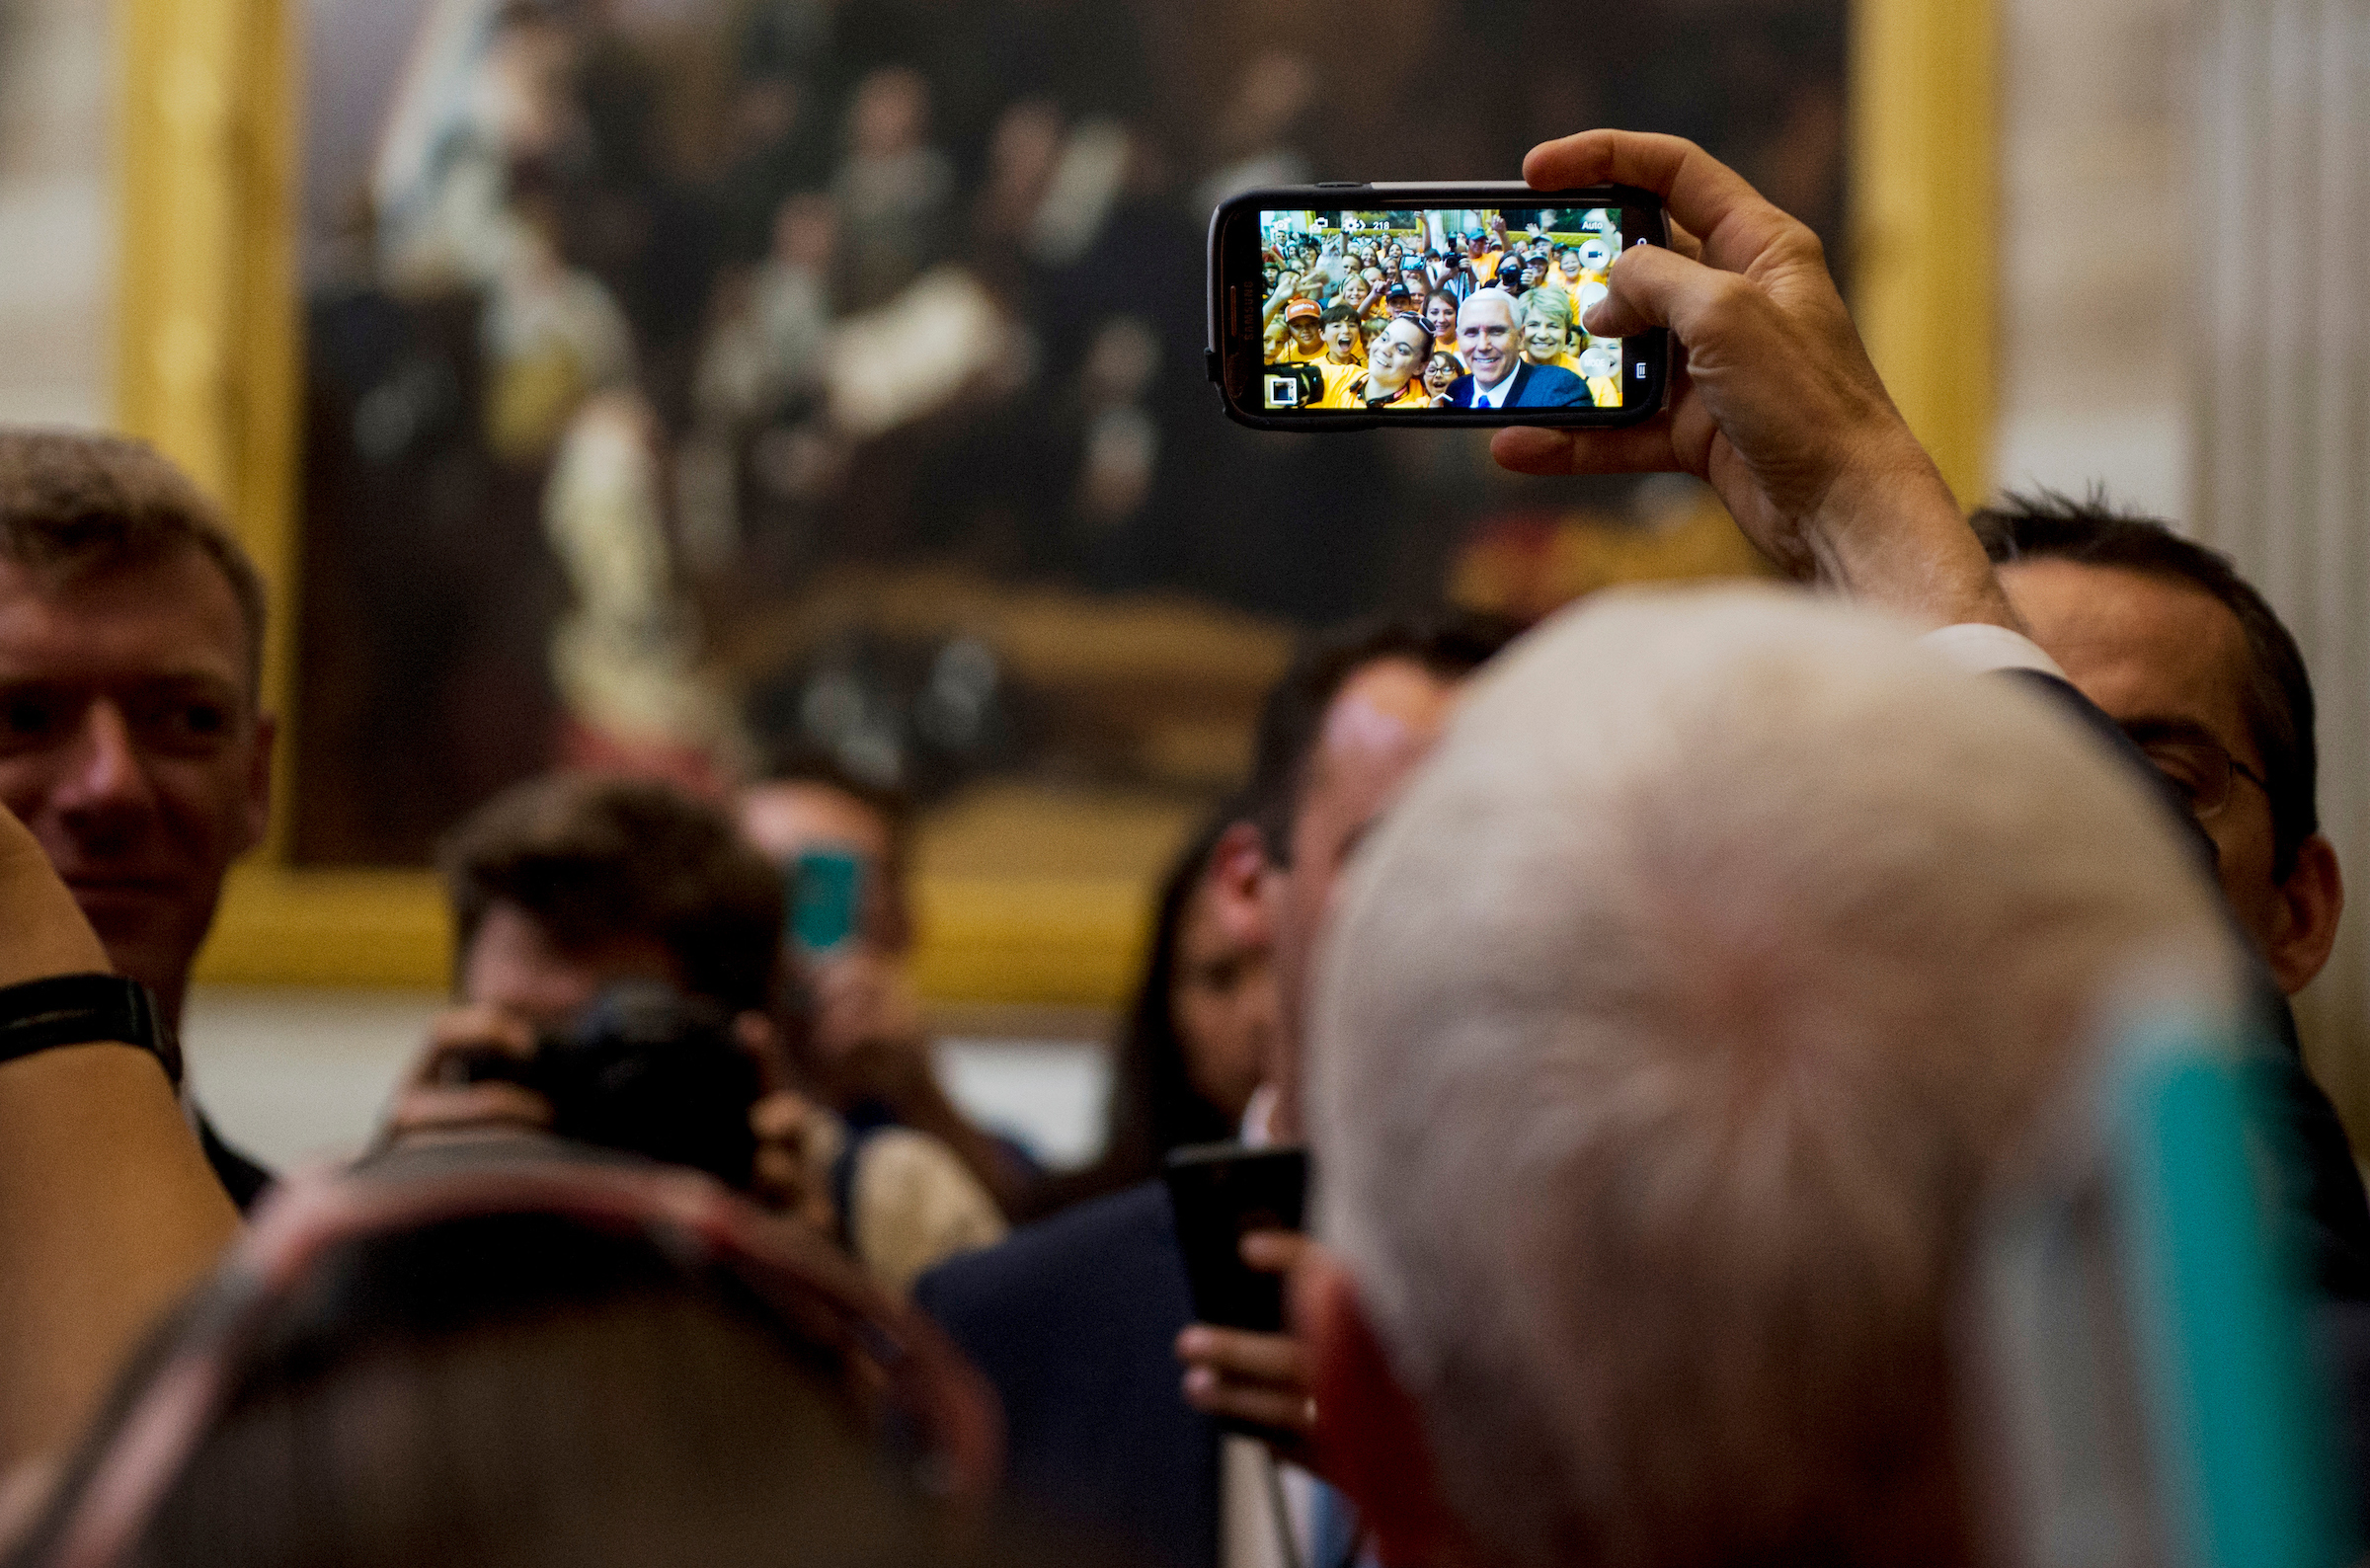 UNITED STATES - MAY 2: Vice President Mike Pence stops to take a selfie with a school group from Moultrie, Ga., in the U.S. Capitol Rotunda after leaving the Senate Republicans' policy lunch in the Capitol on Tuesday, May 2, 2017. (Photo By Bill Clark/CQ Roll Call)